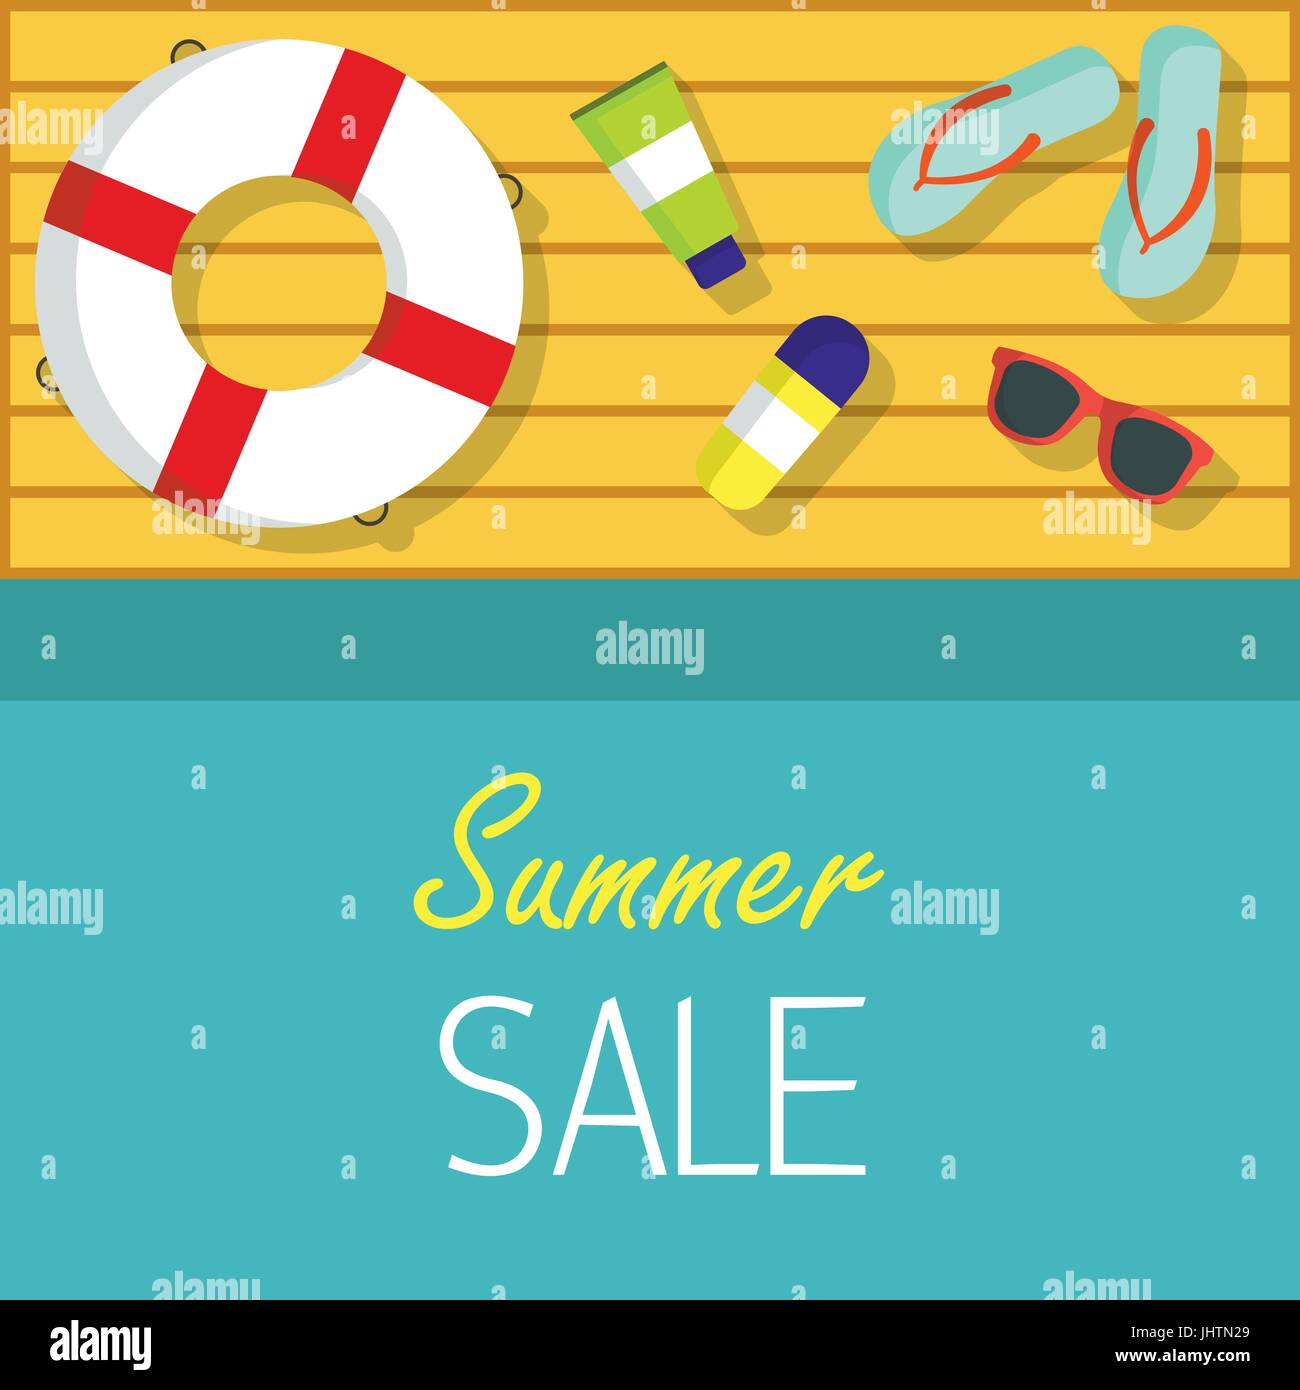 61dab53ed Summer sale Vector background for web